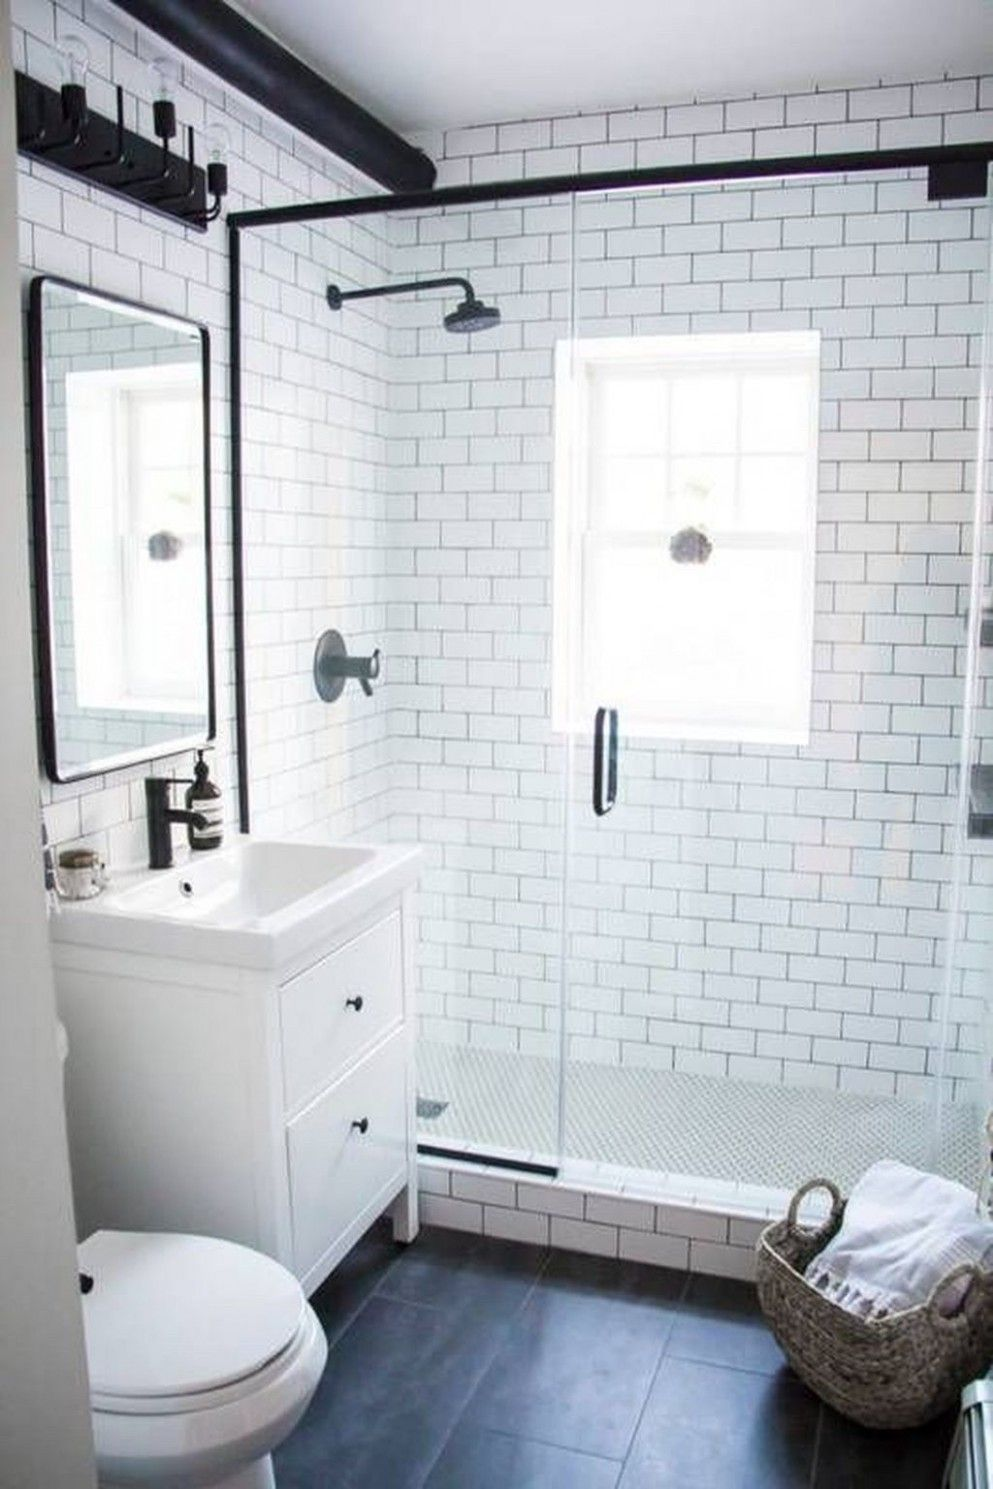 6 Small Bathroom Remodel Old House That Had Gone Way Too Far If A